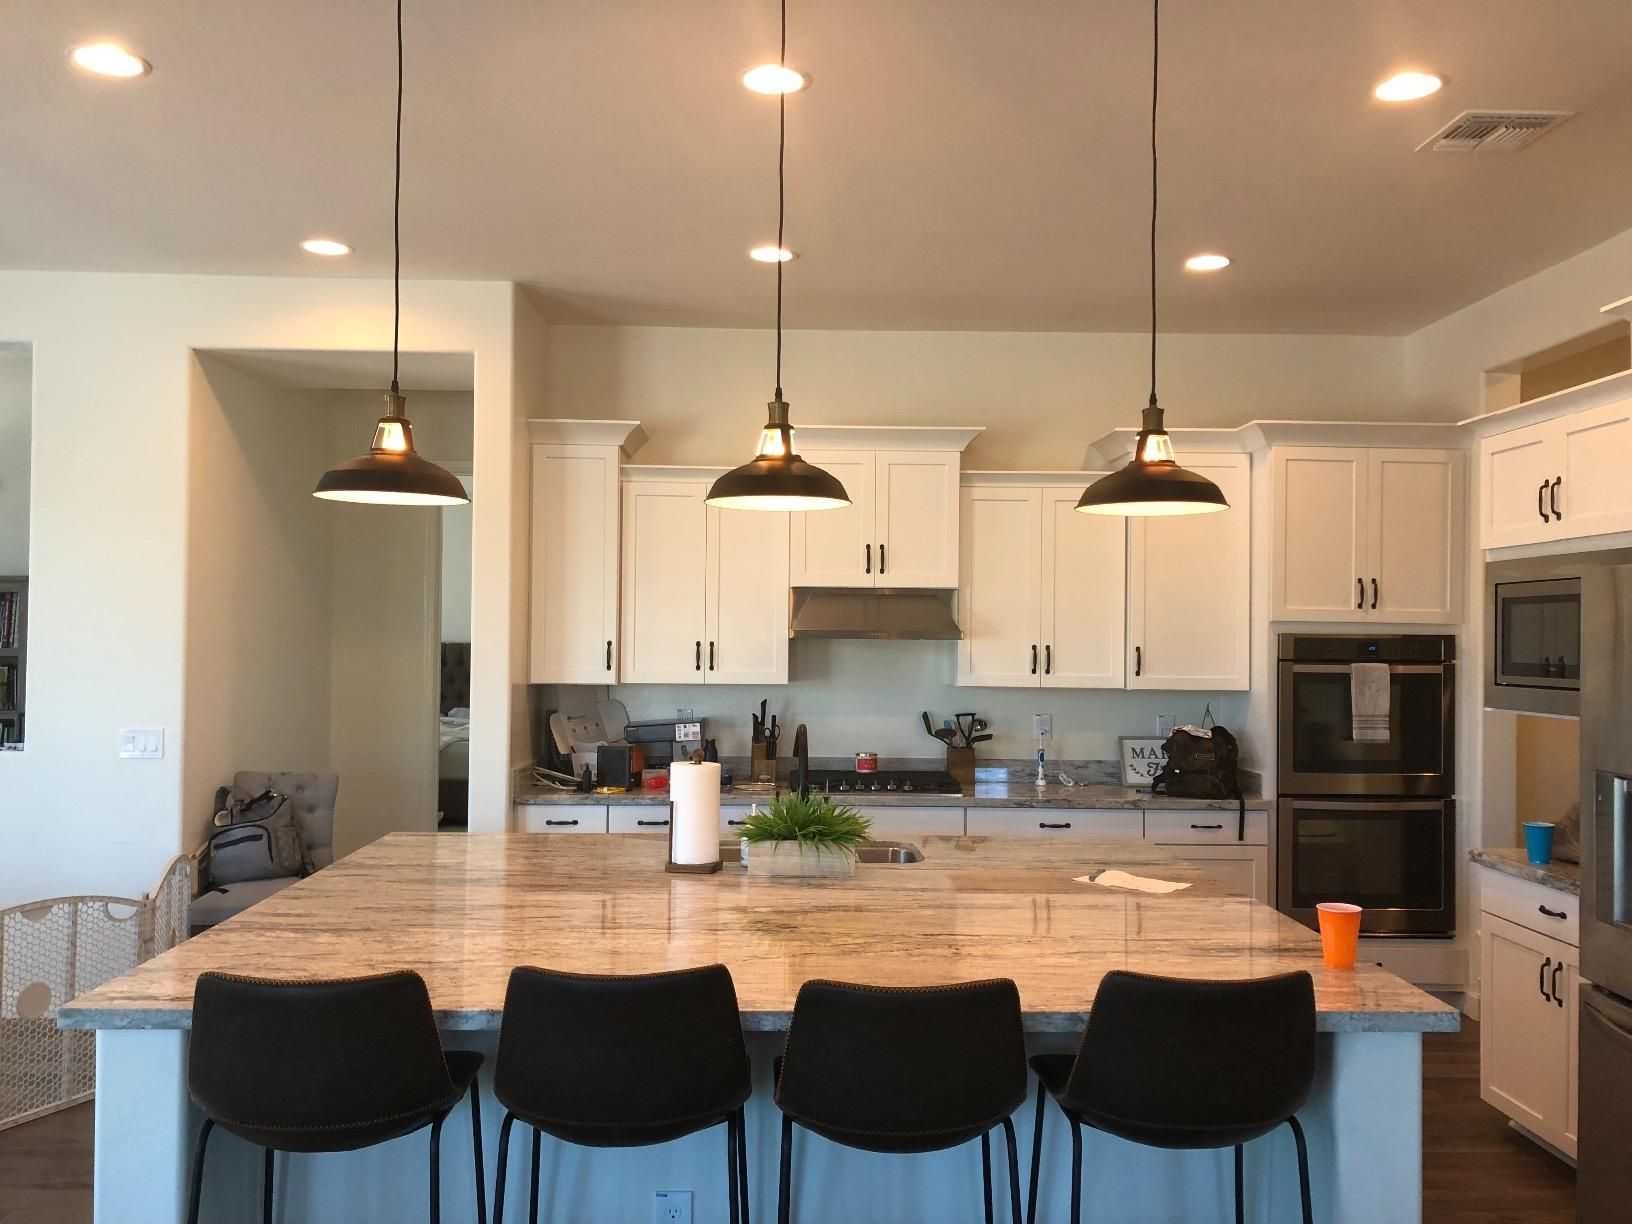 Kitchen Island Lighting Idea From Our Dear Customer Kitchen Remodel Large Kitchen Island Rustic Kitchen